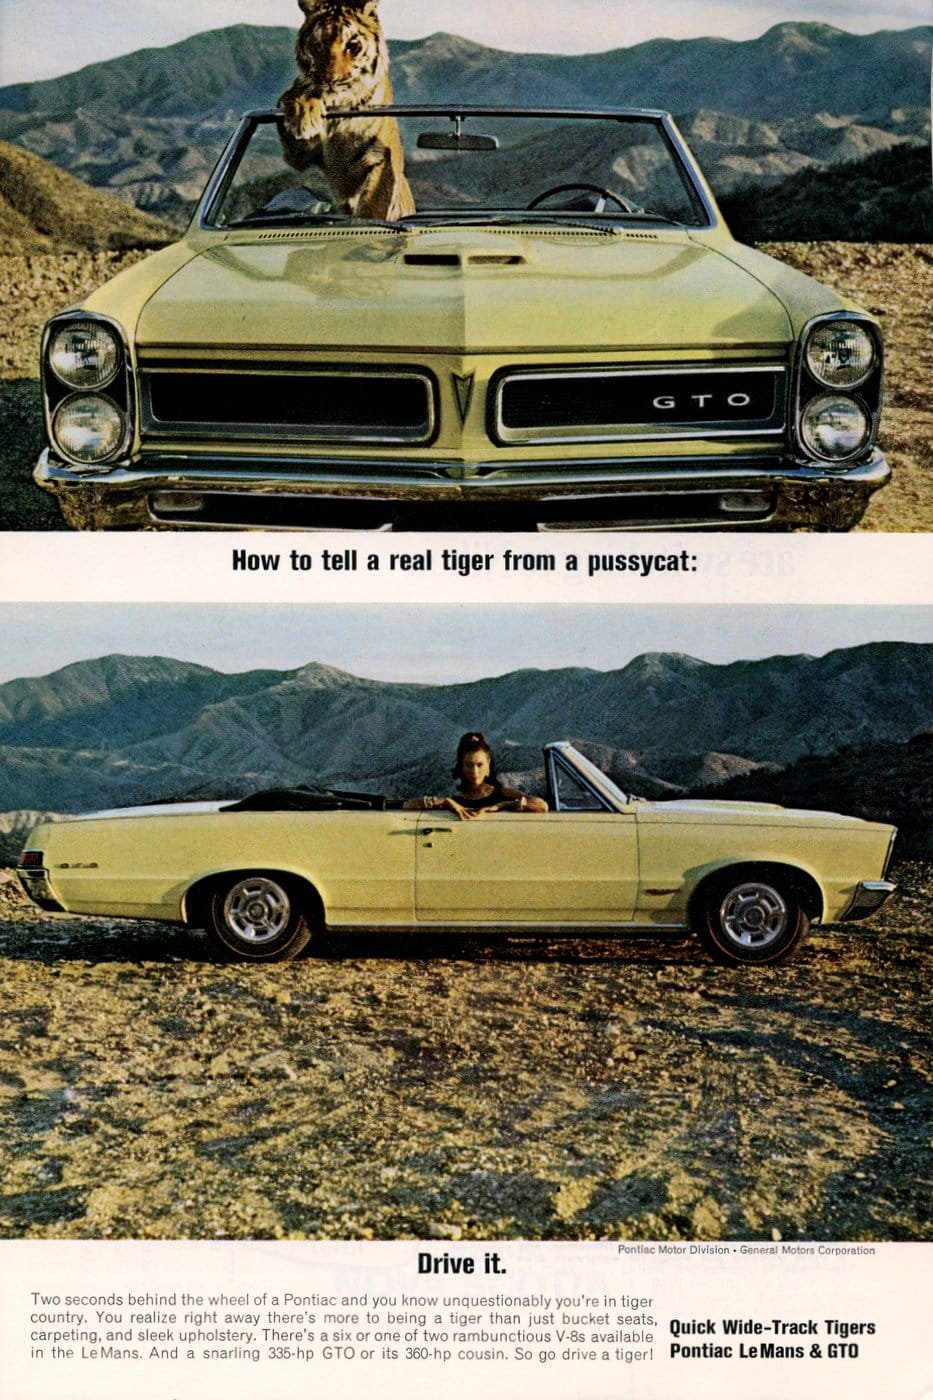 Quick Wide-Track Tigers - 65 Pontiac LeMans and GTO